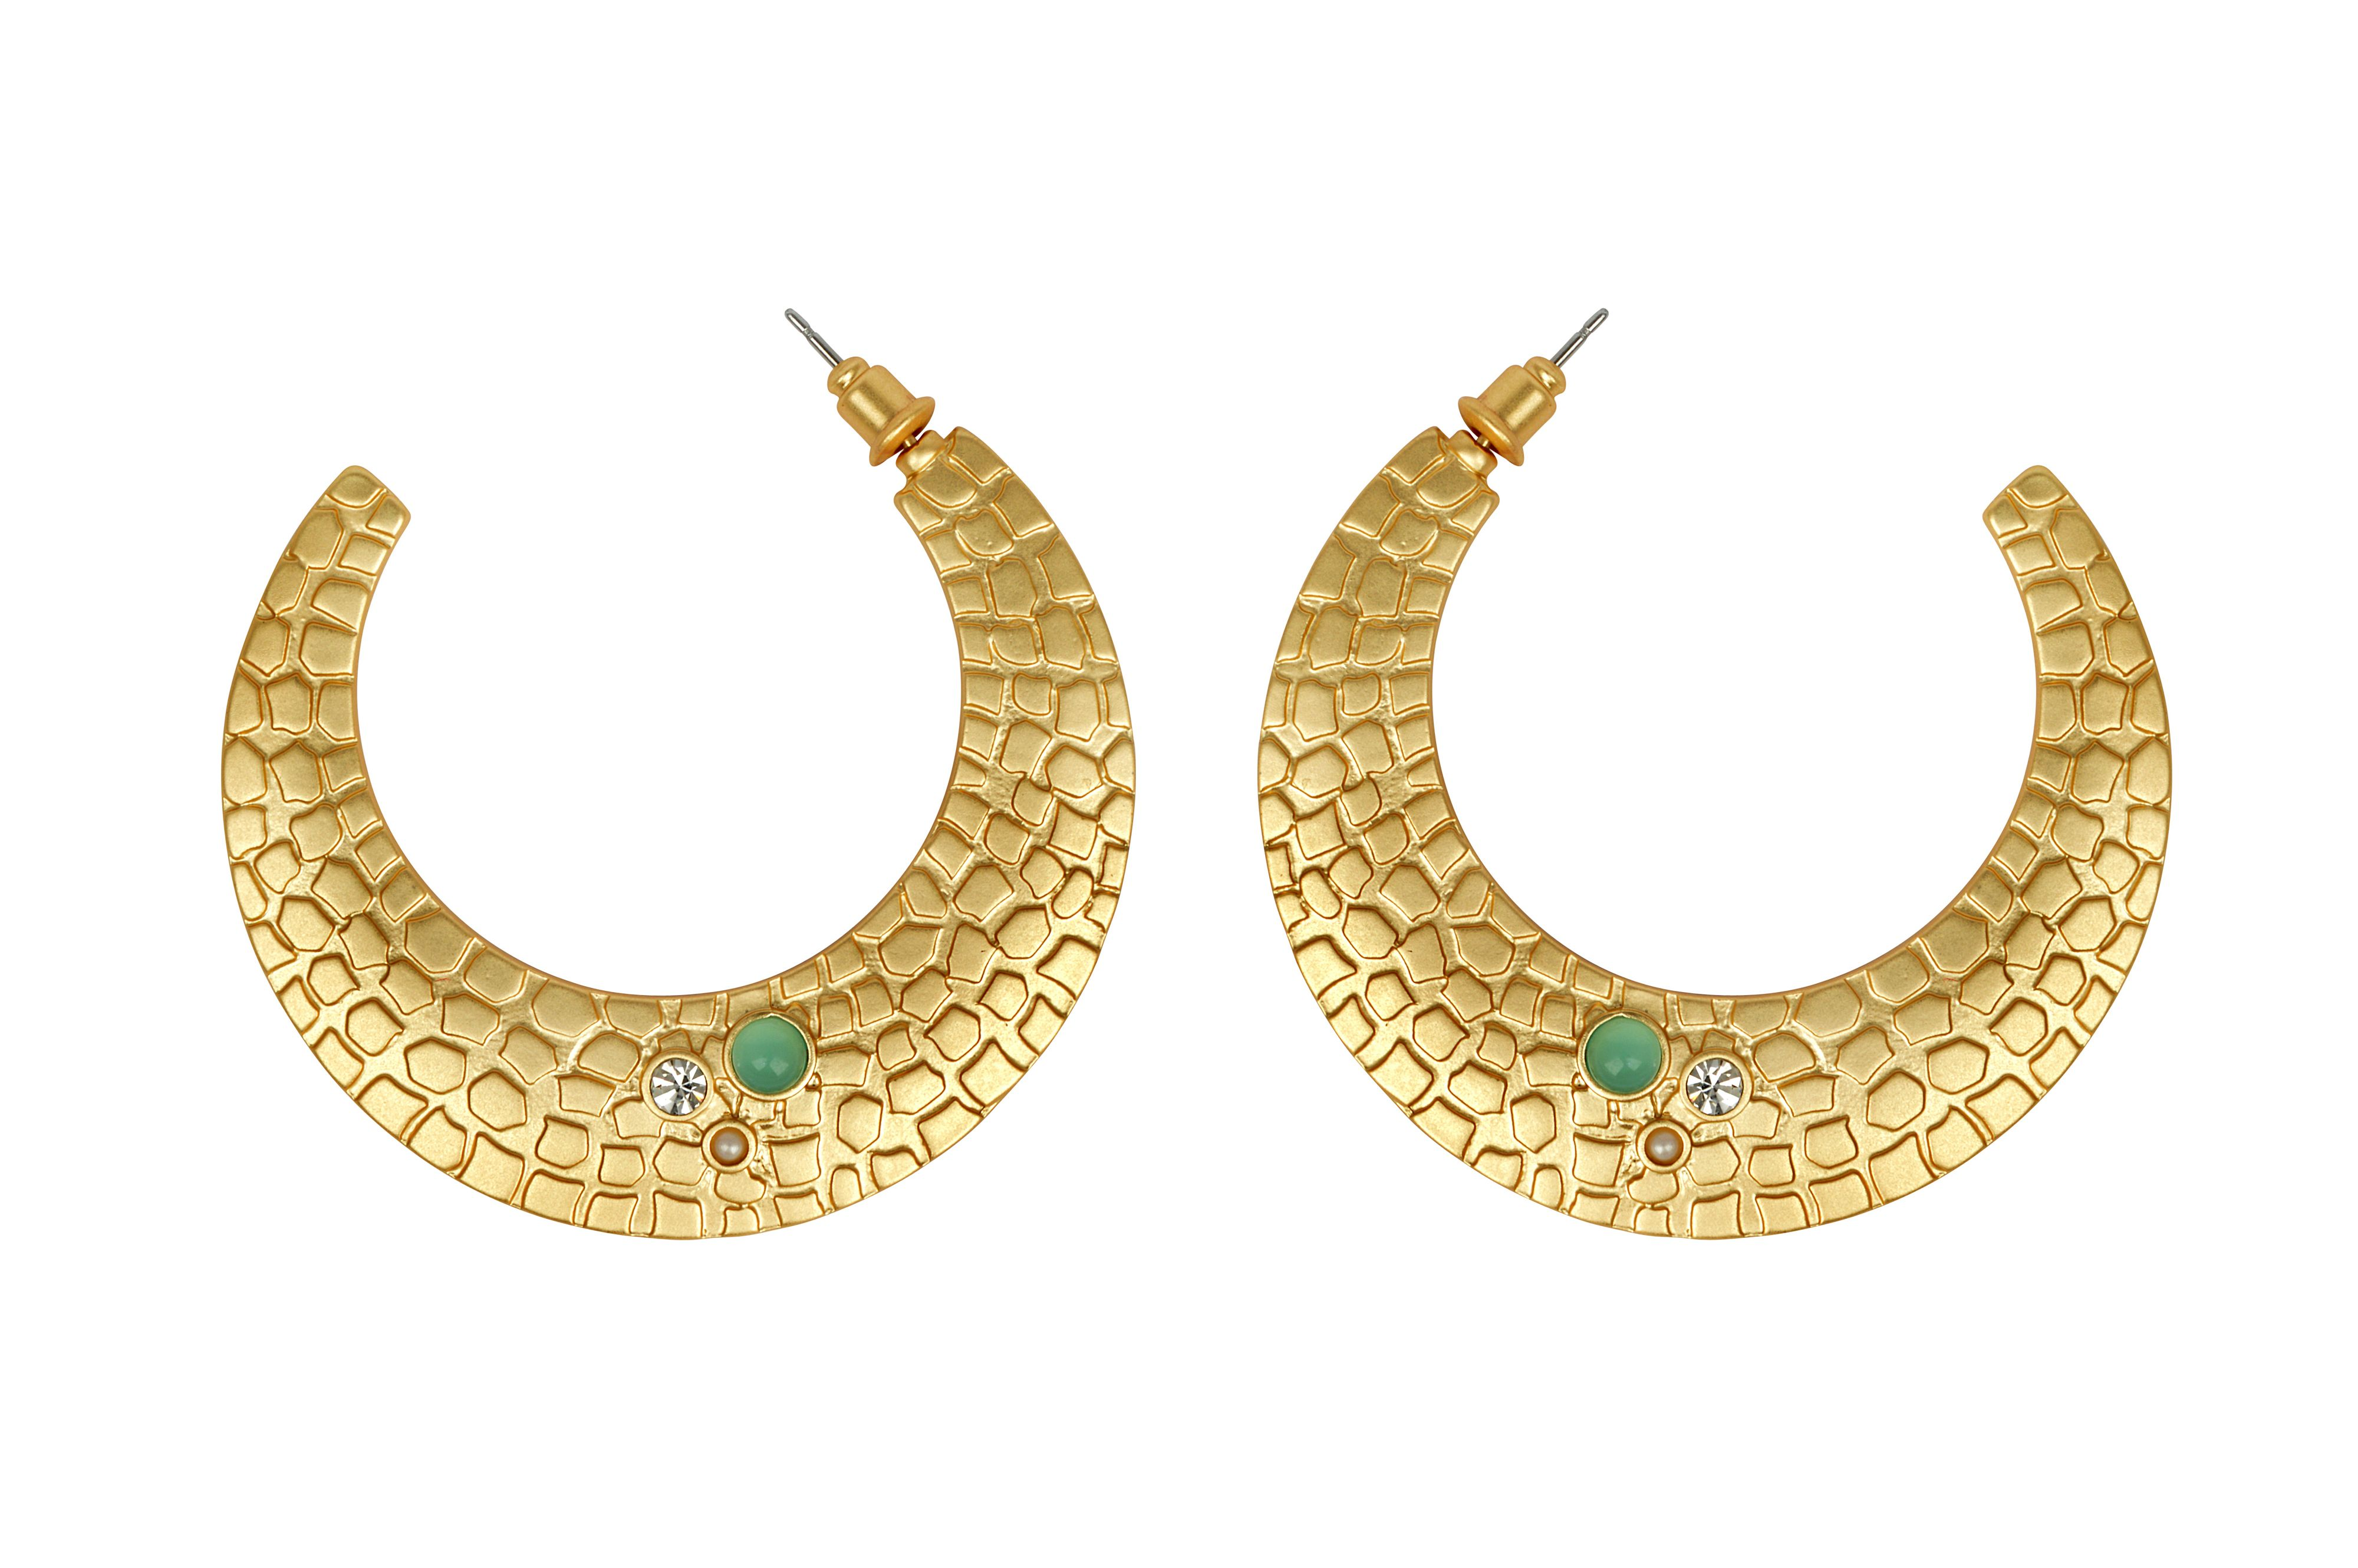 Reptile earrings